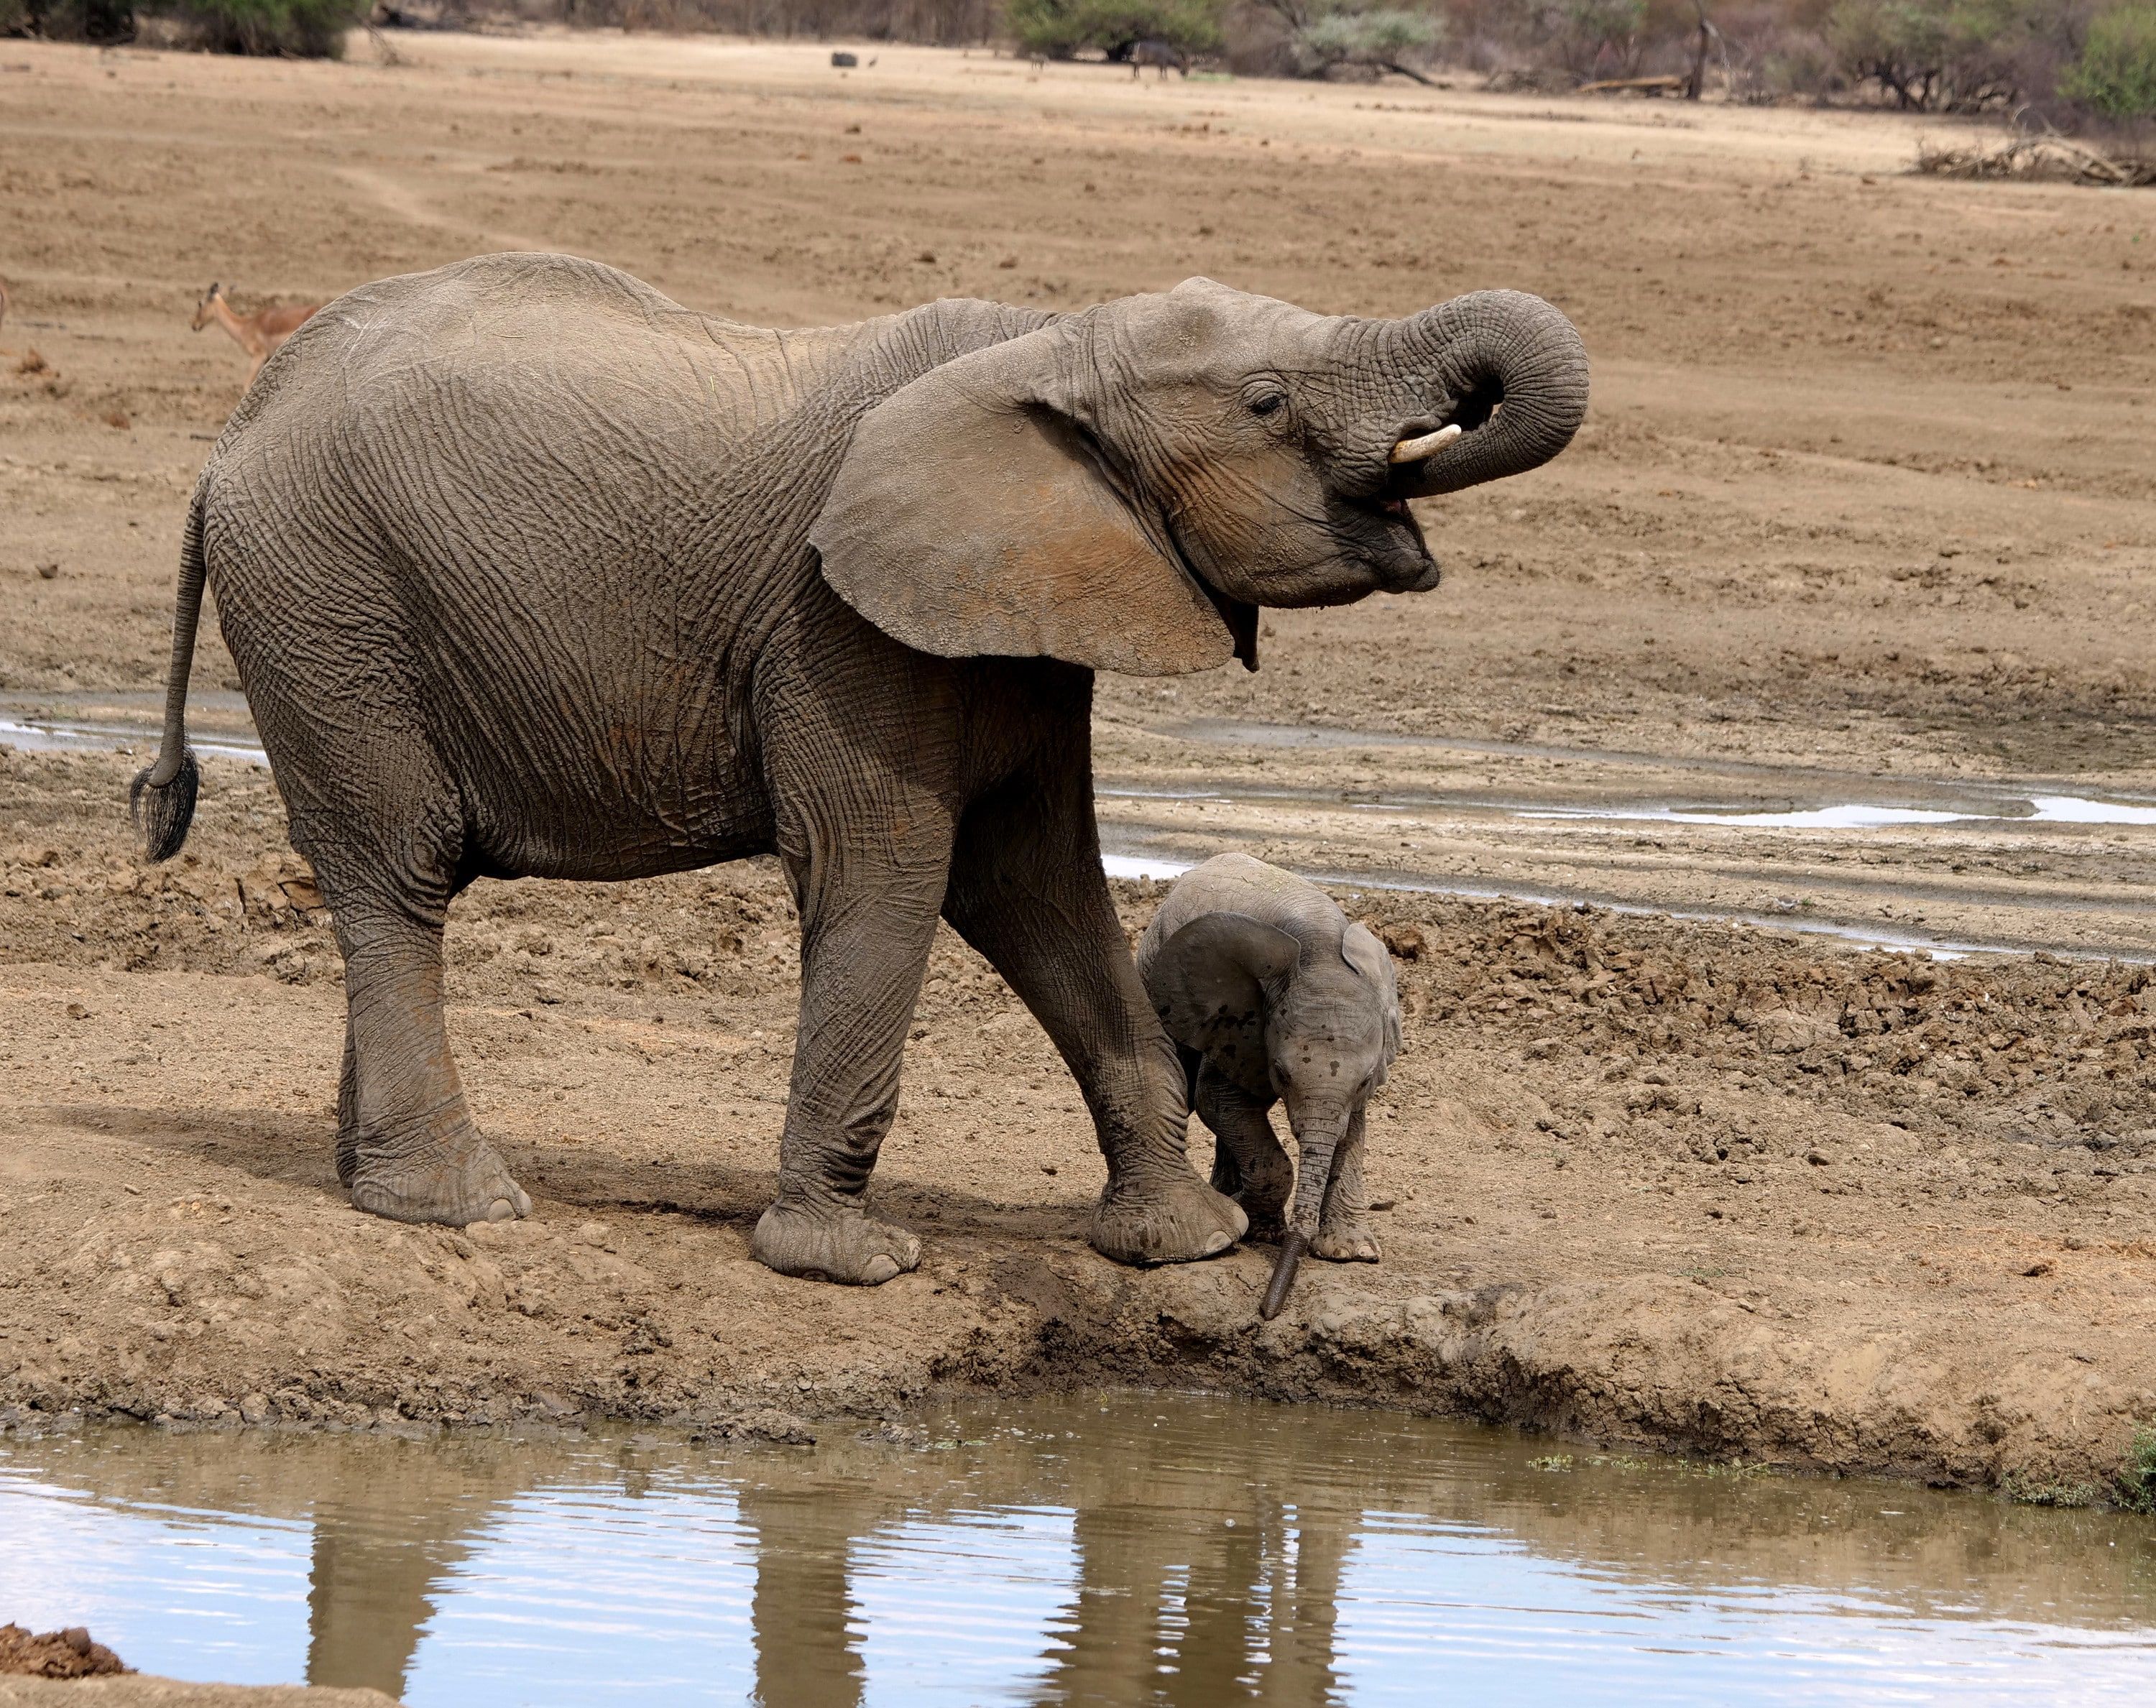 Aria and Thandi drinking. (National Geographic for Disney+/Melanie Gerry)